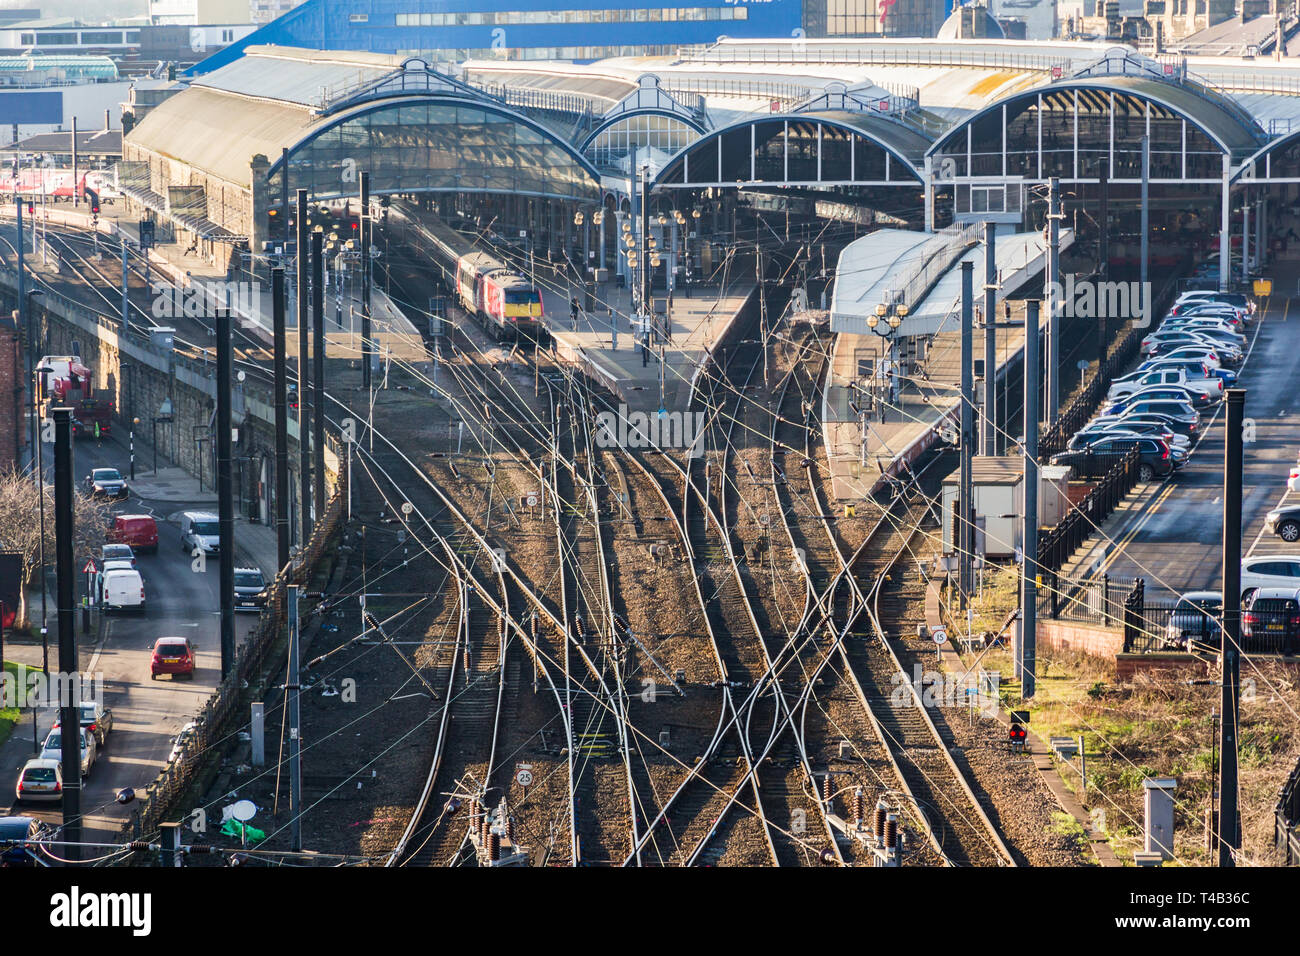 Grand old Newcastle Central railway station and multiple train tracks of the east coast main line and showing an express train at the platform - Stock Image